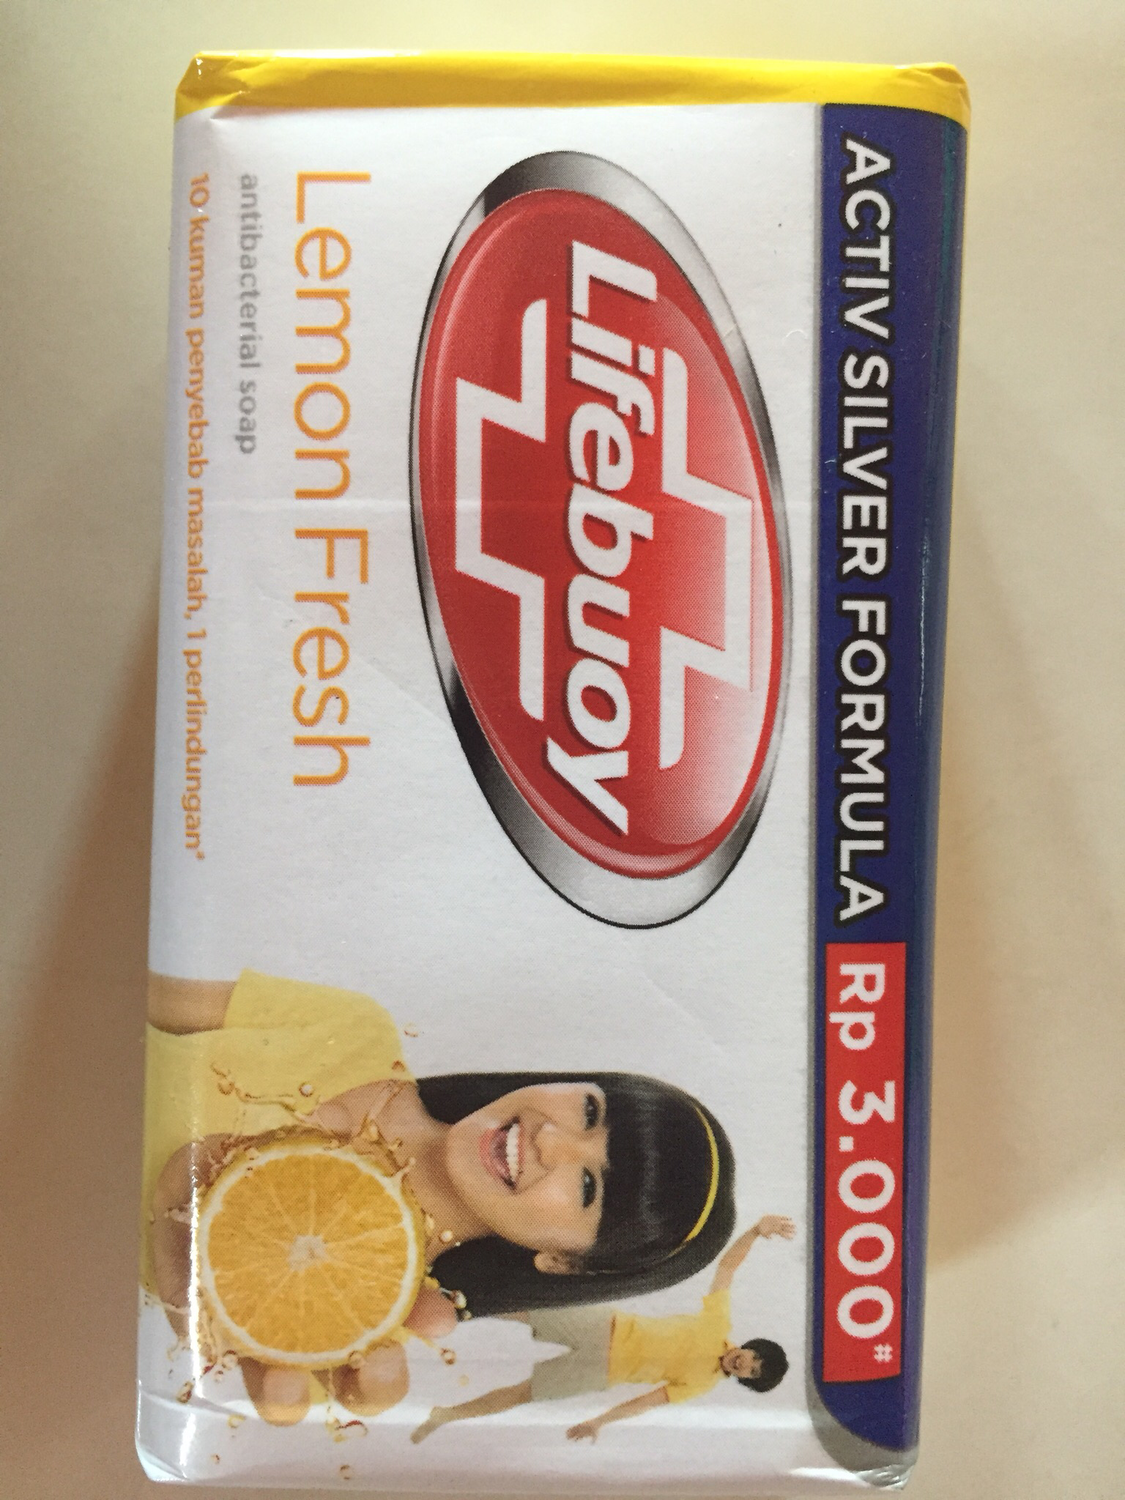 Lifebuoy Lemon Fresh-Sabun Batang 85g